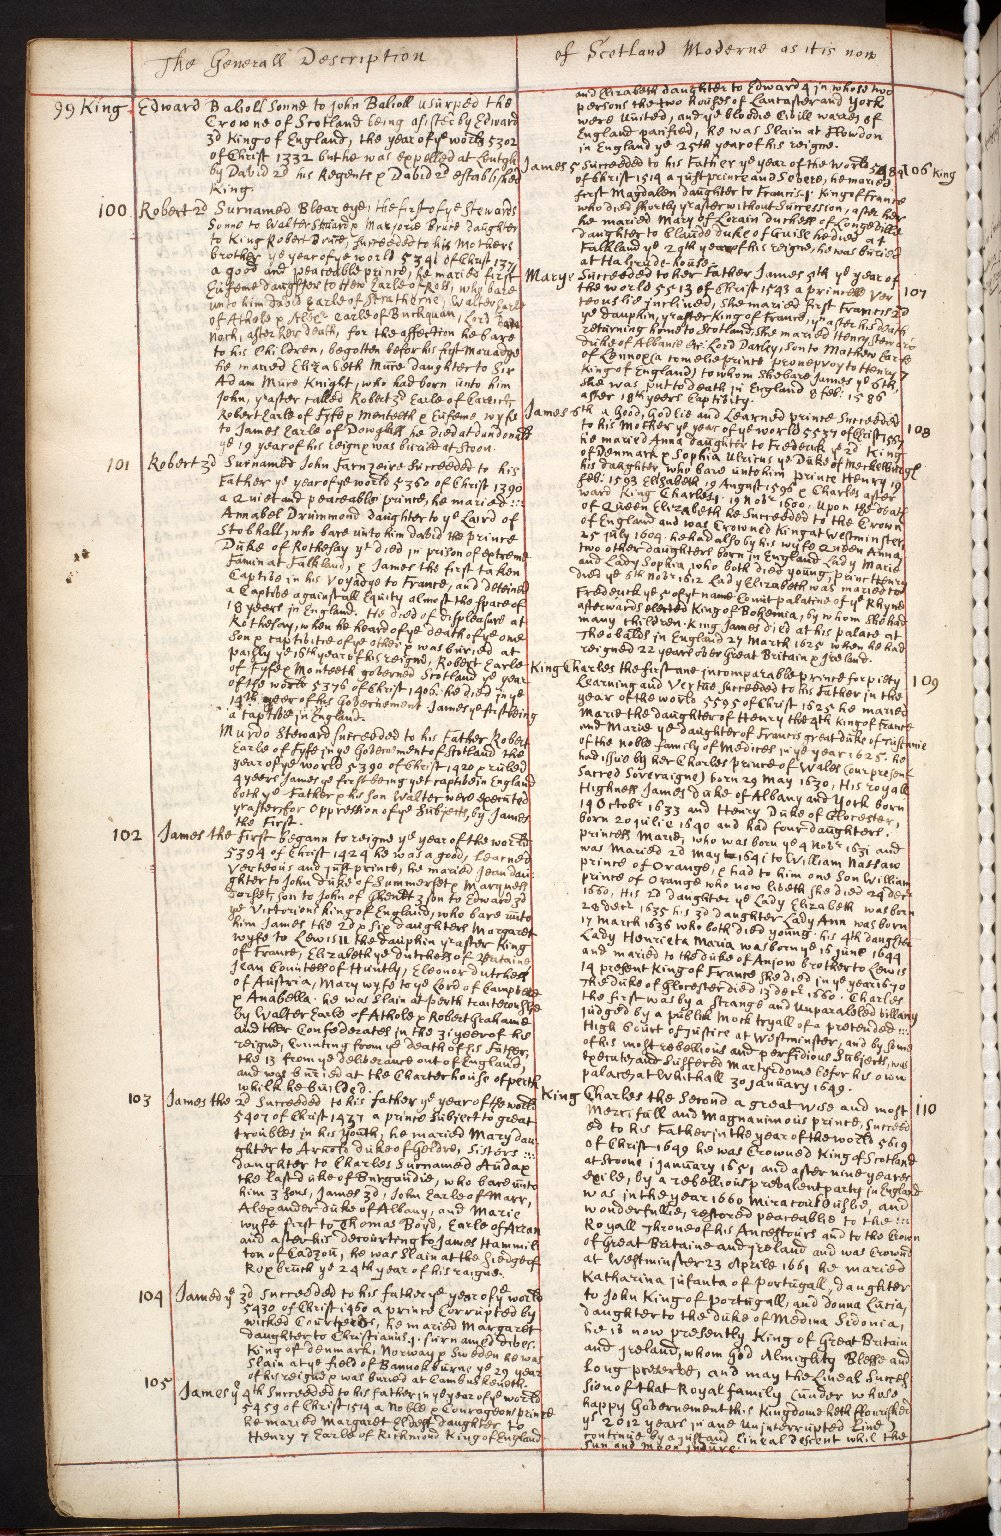 Atlas Scoticus, or a Description of Scotland Ancient and Modern. [044 of 259]